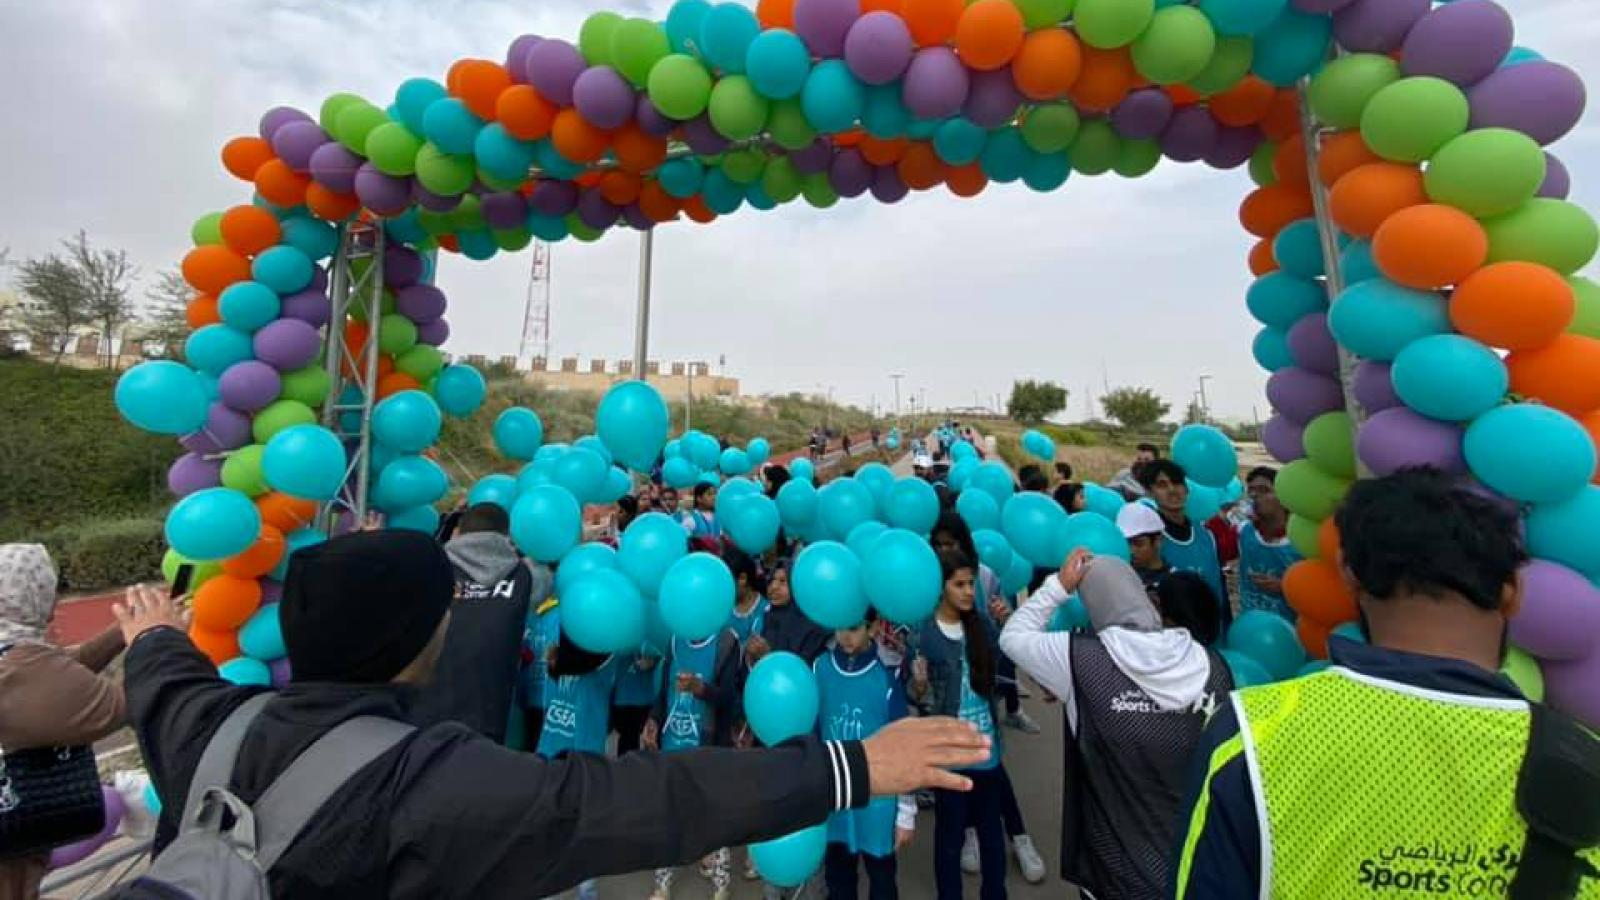 WATCH: Balloon Run at Al Bidda Park sees great turnout